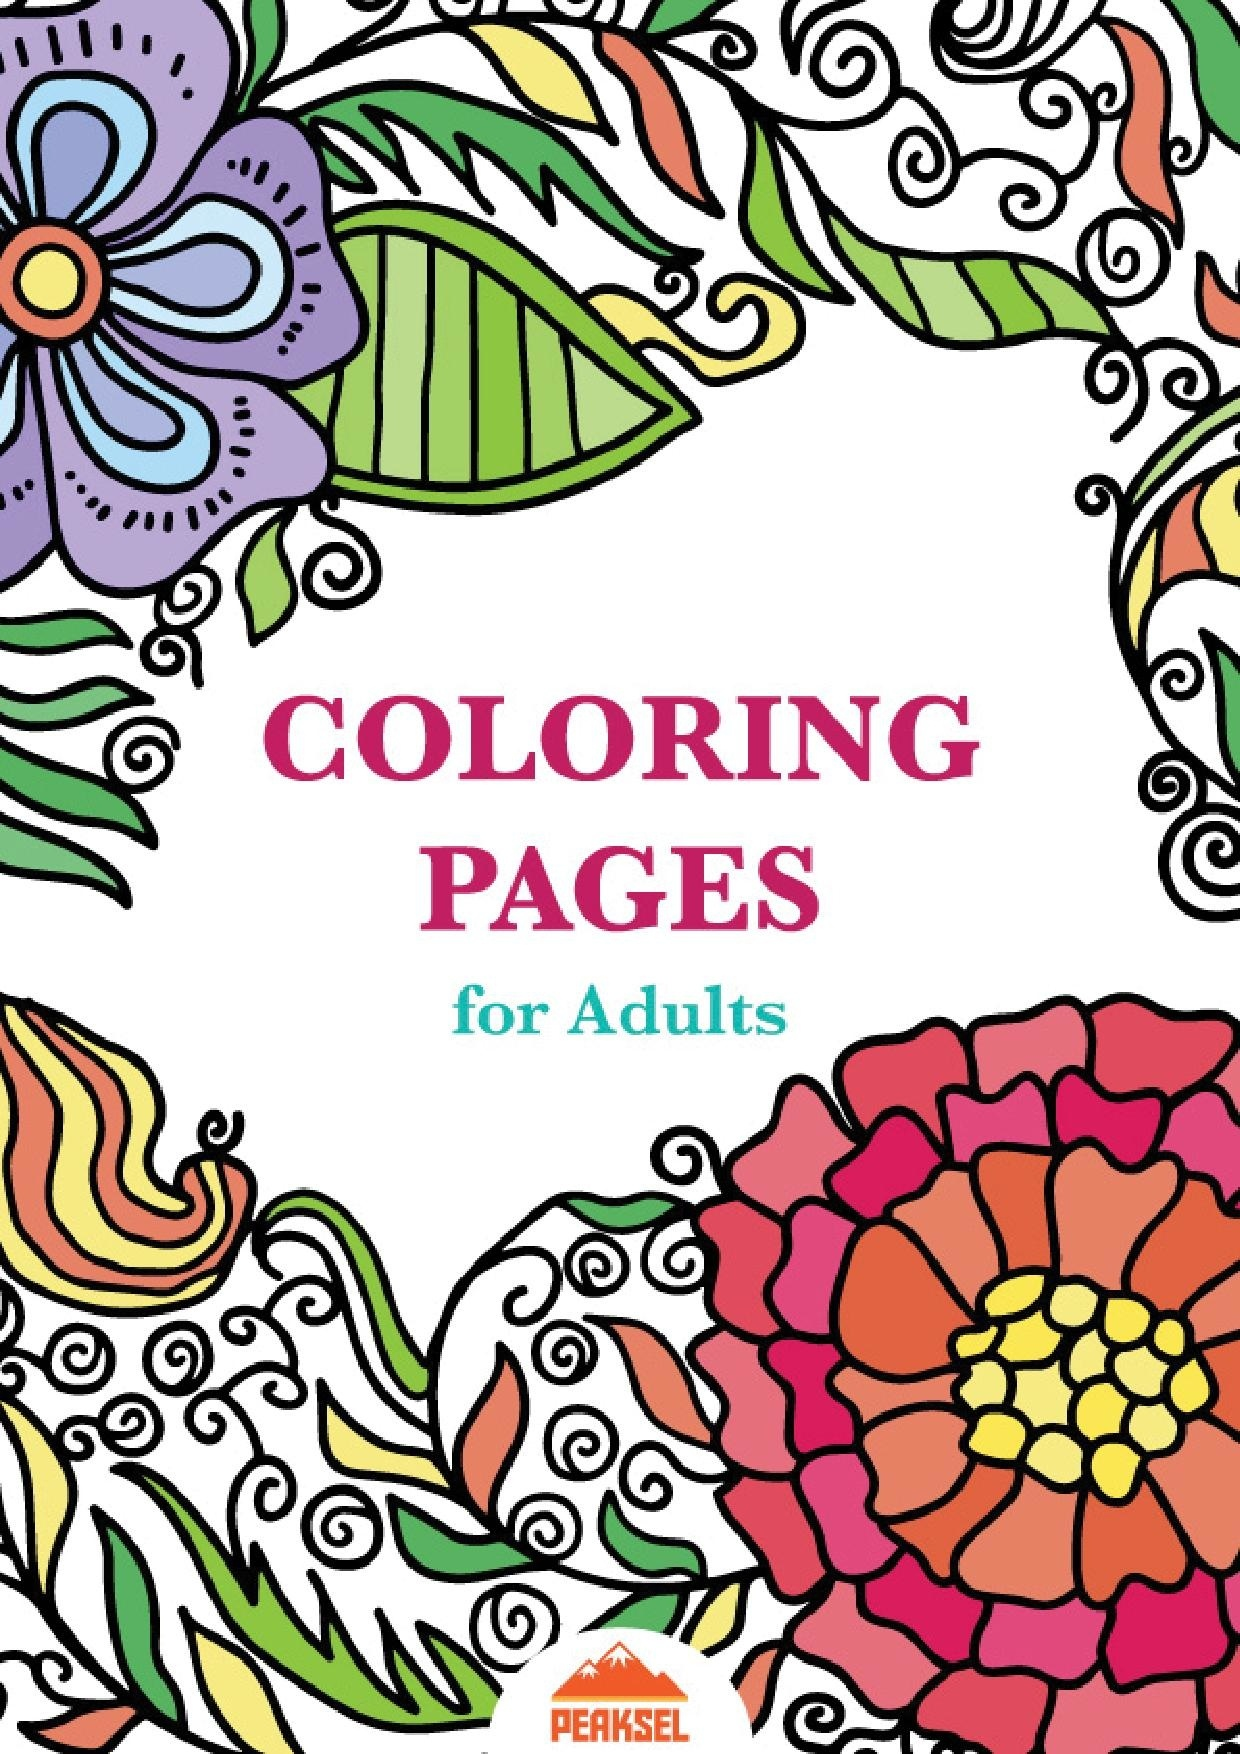 File:printable Coloring Pages For Adults - Free Adult Coloring Book - Free Printable Coloring Book Pages For Adults